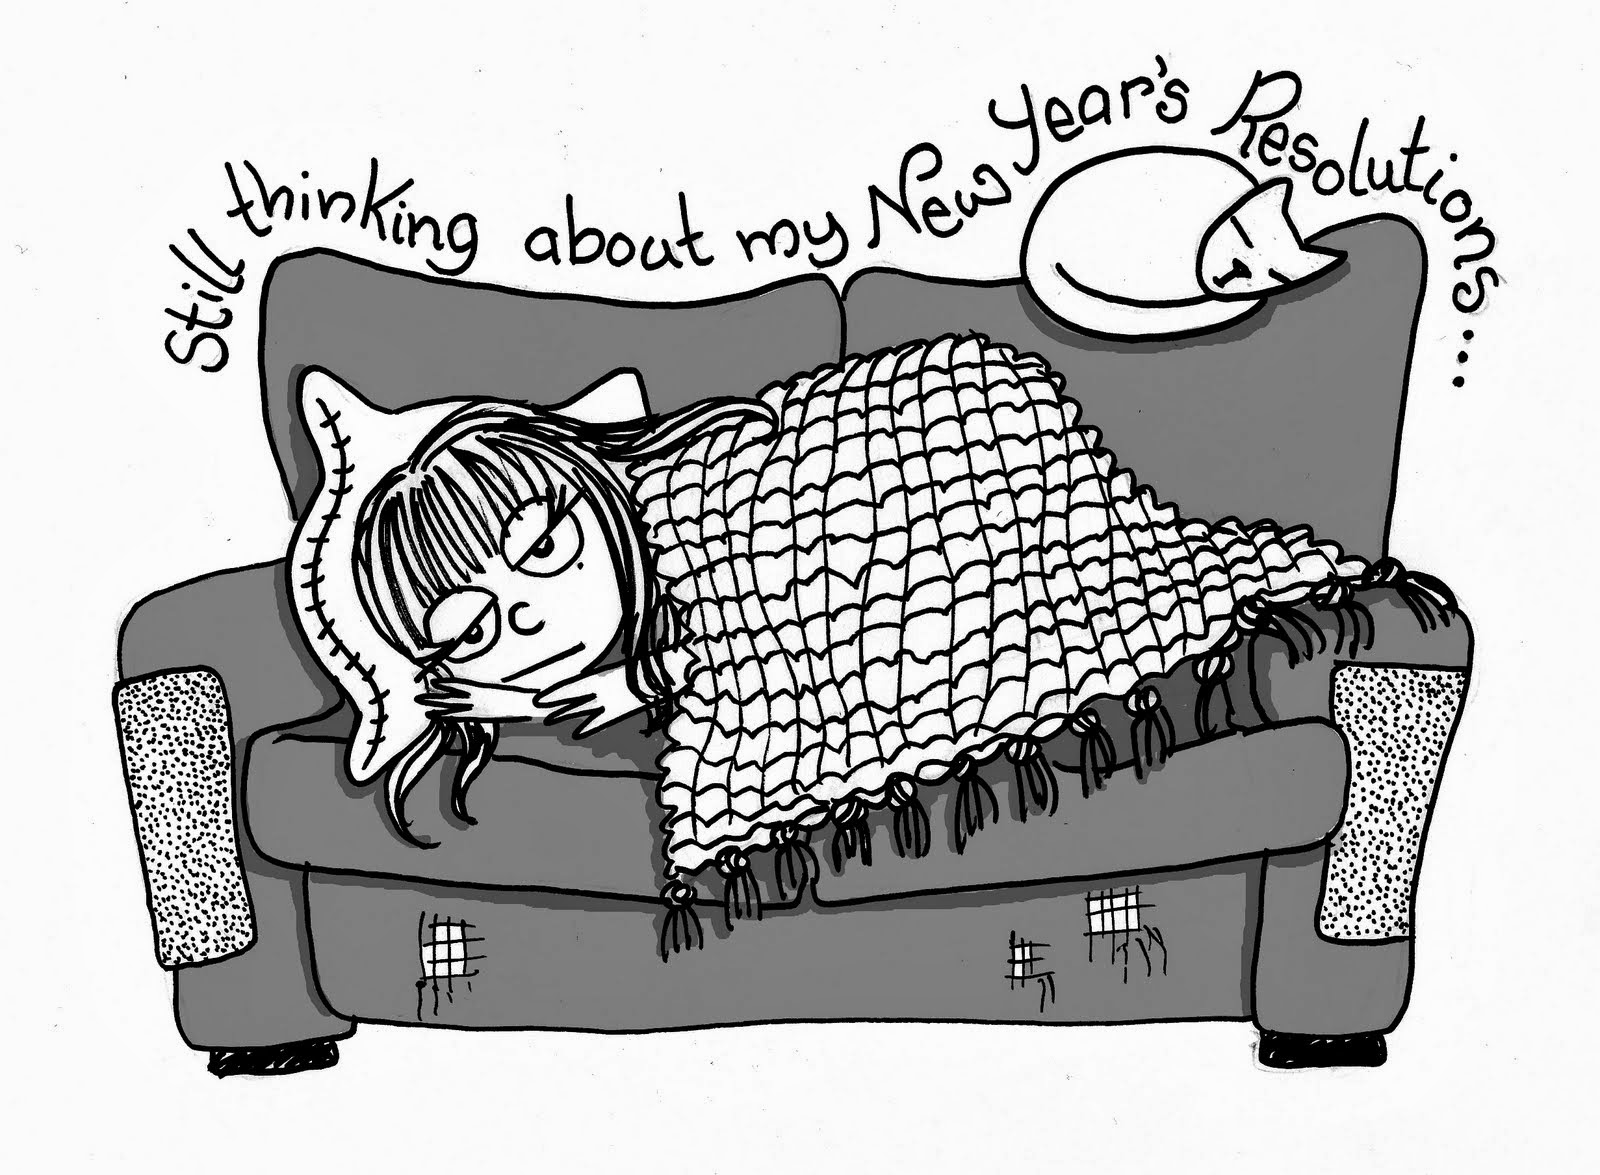 Woman on couch thinking about New Year resolutions